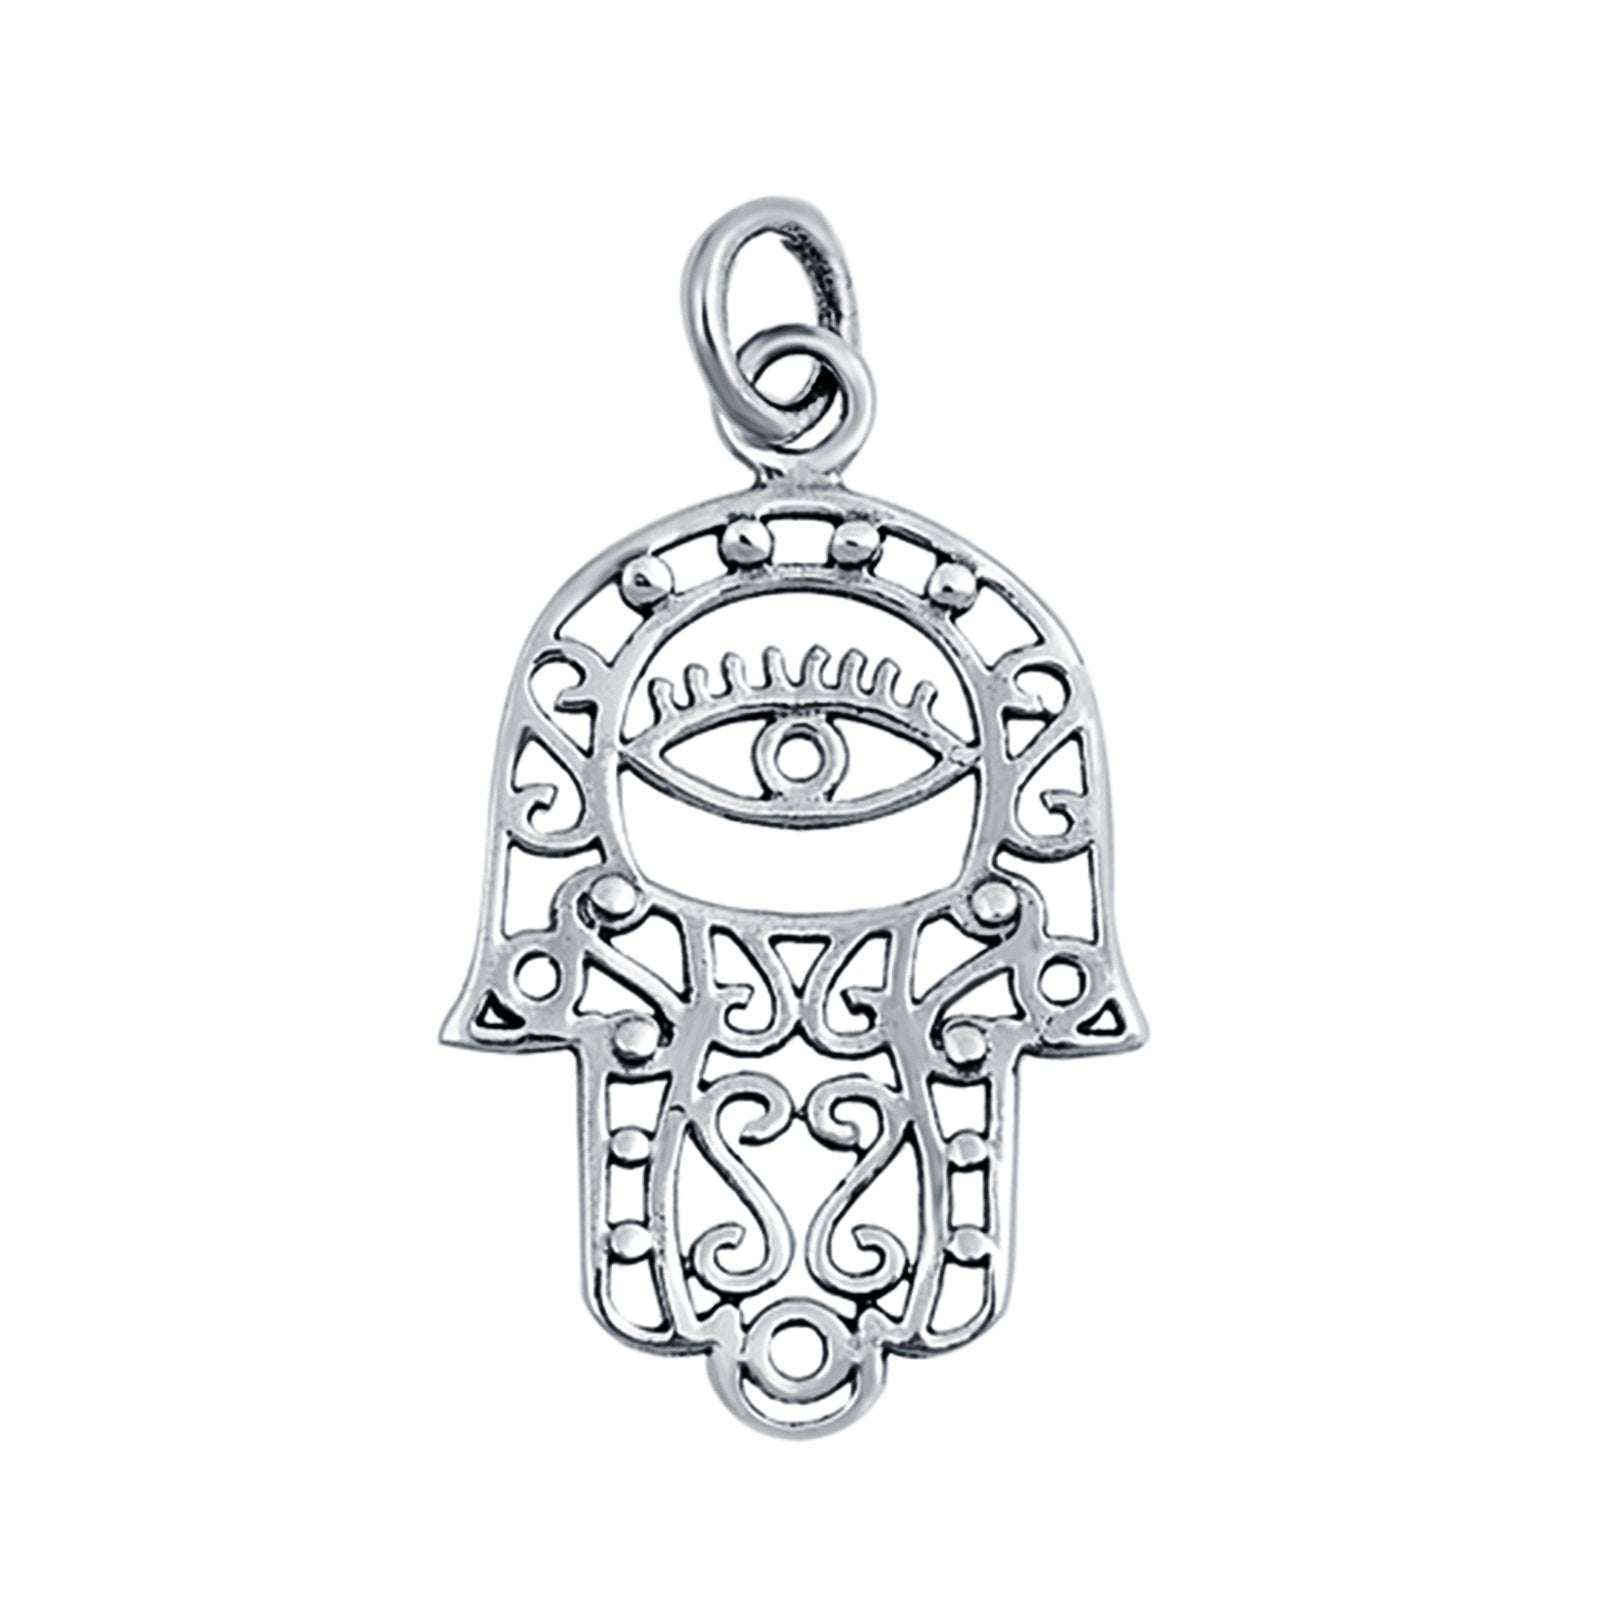 Hamsa All Seeing Eye Pendant Charm 925 Sterling Silver